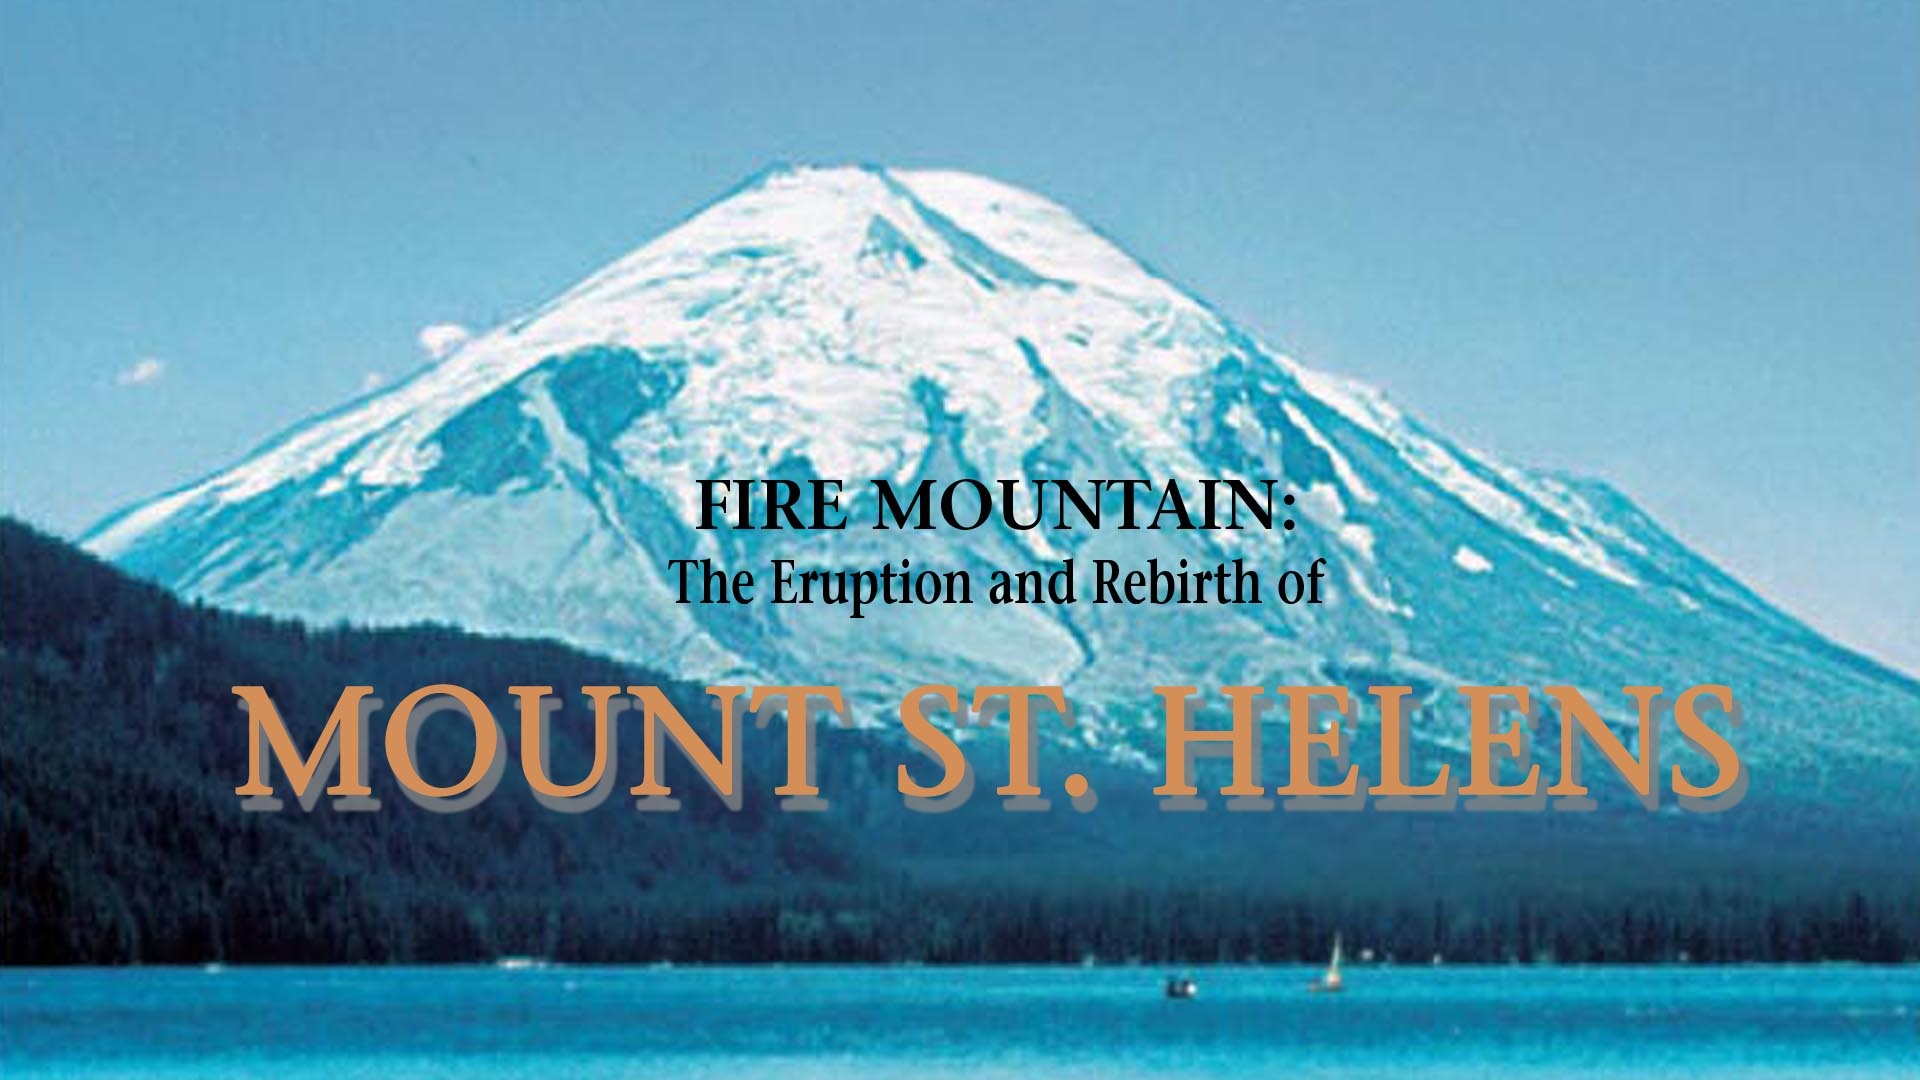 Fire Mountain: The Eruption and Rebirth of Mount St. Helens -